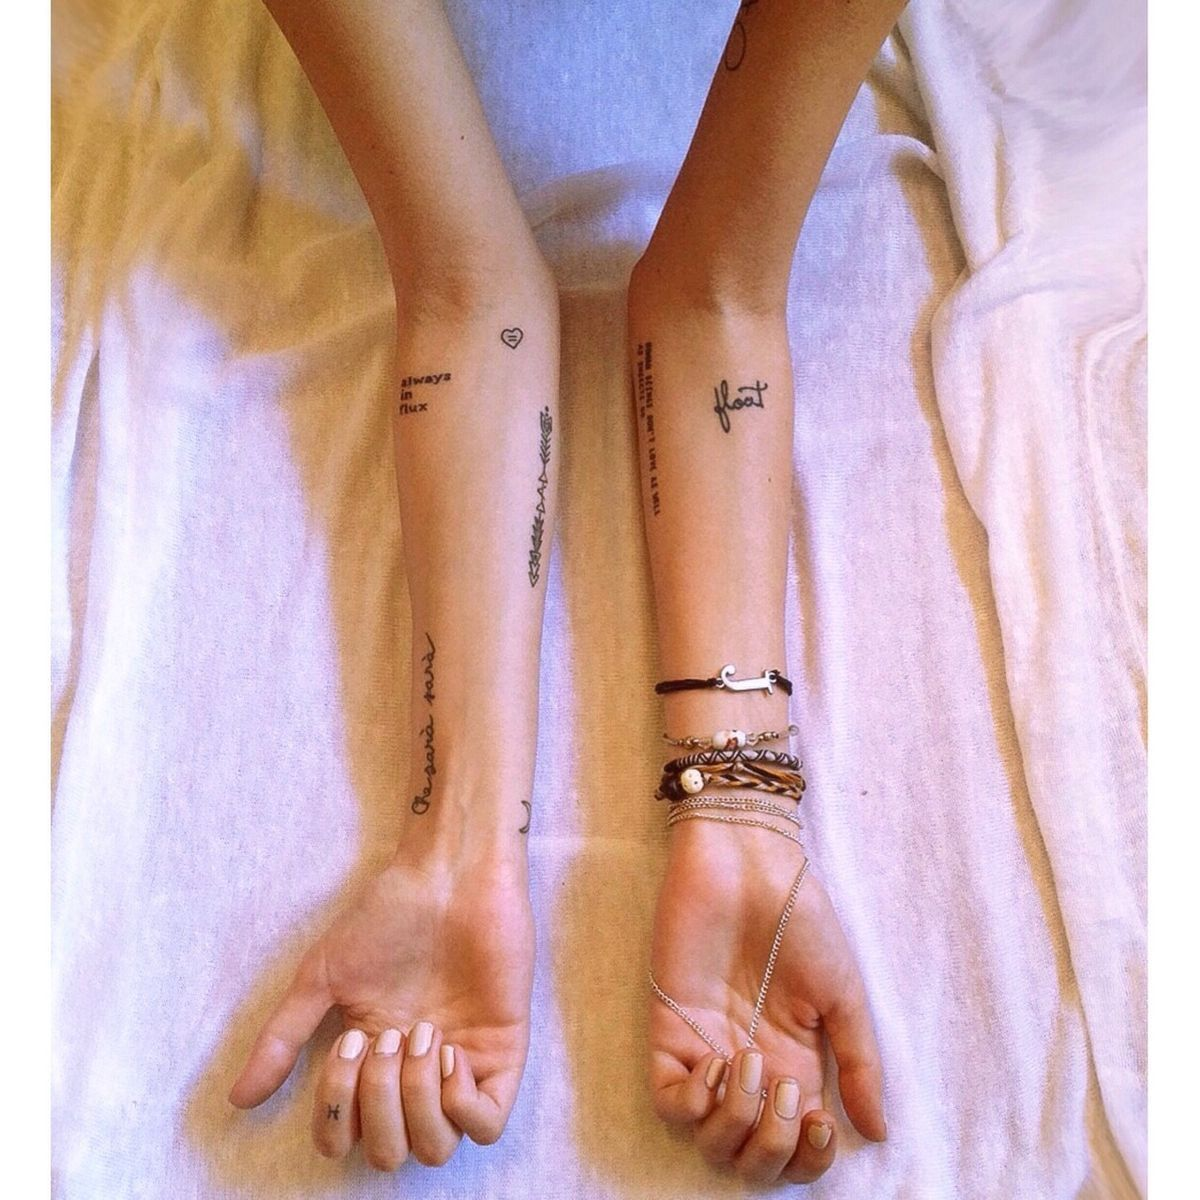 Love ador pisces sign quotes placement piercings u tatoos